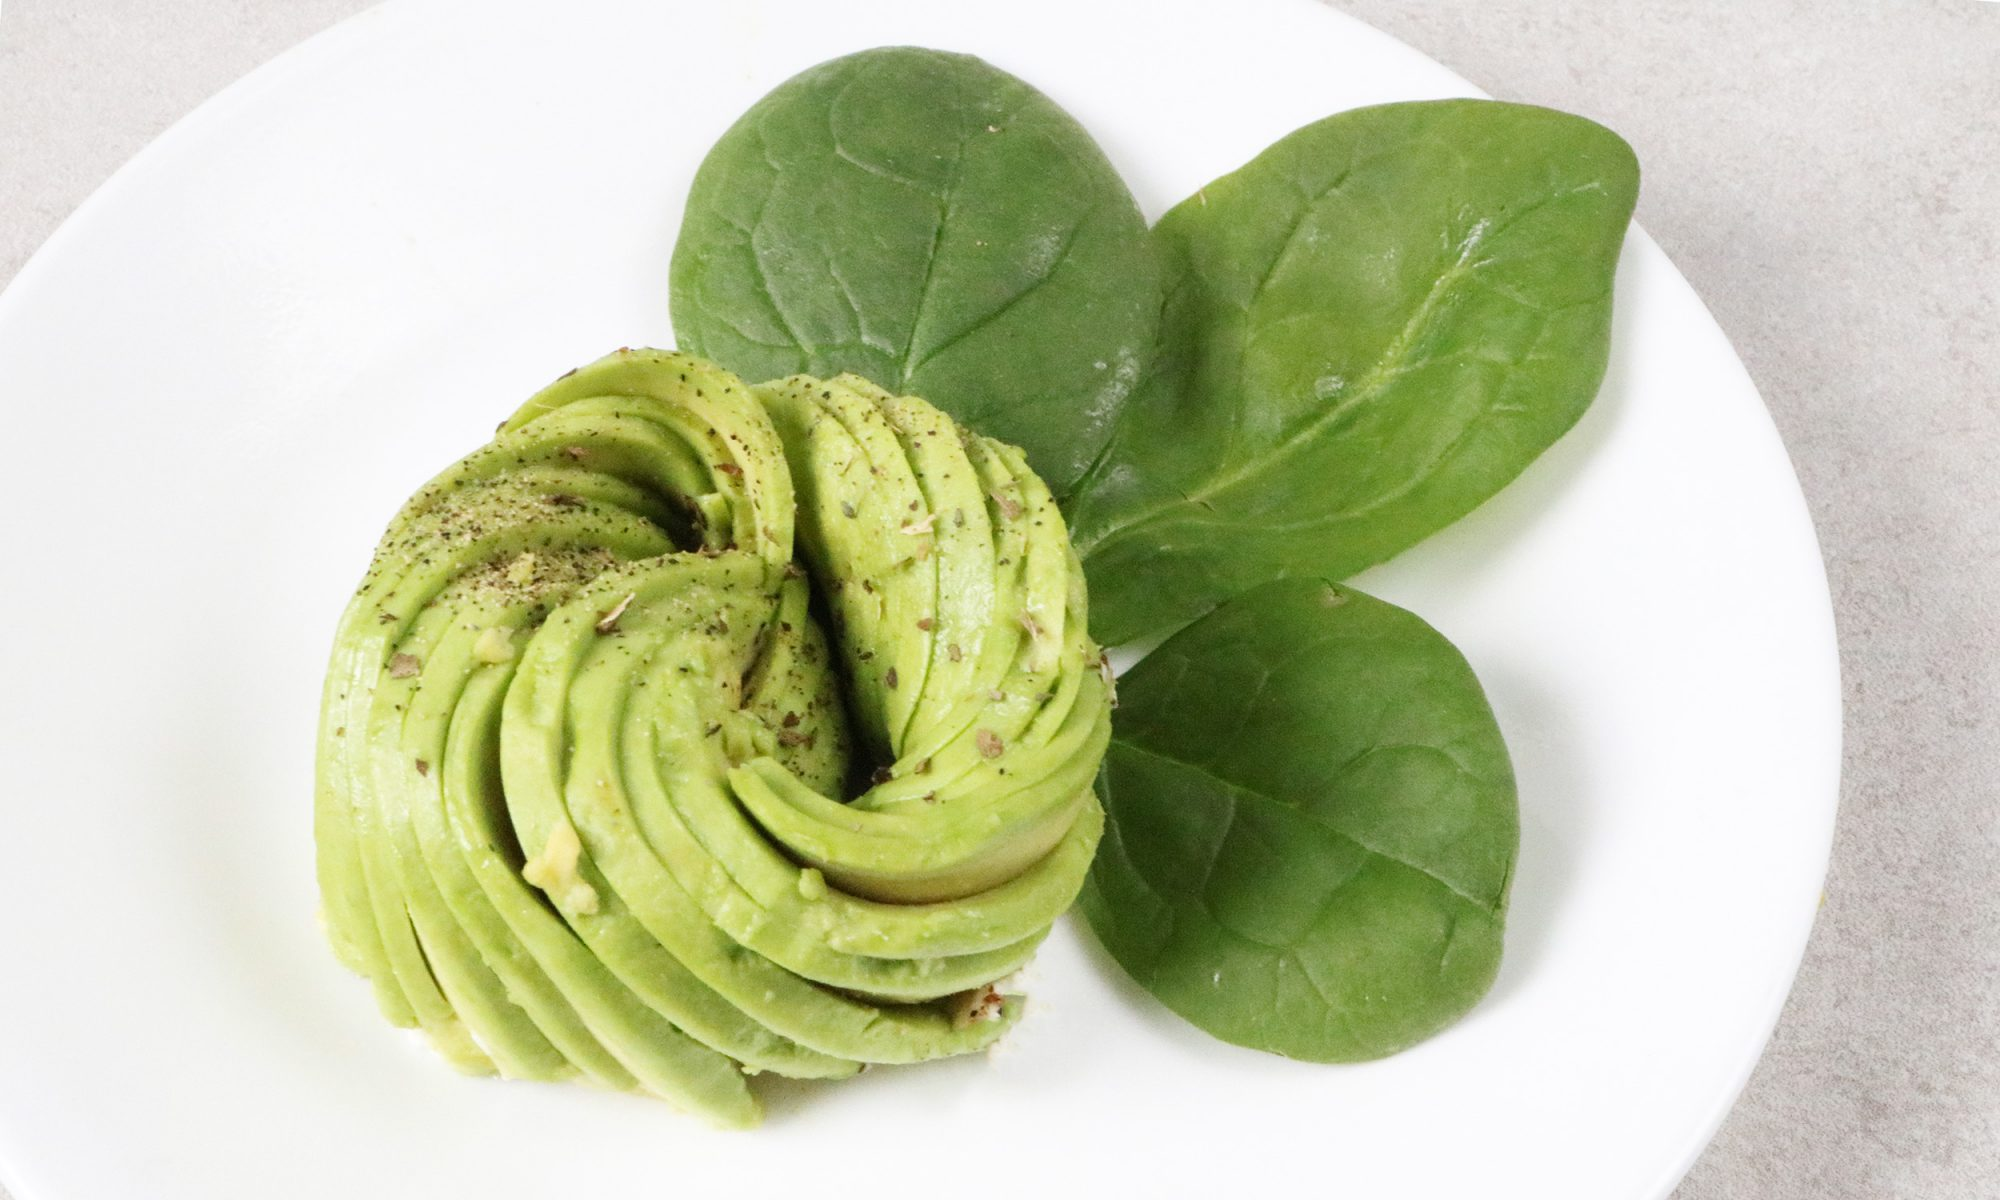 EC: How to Make an Avocado Rose